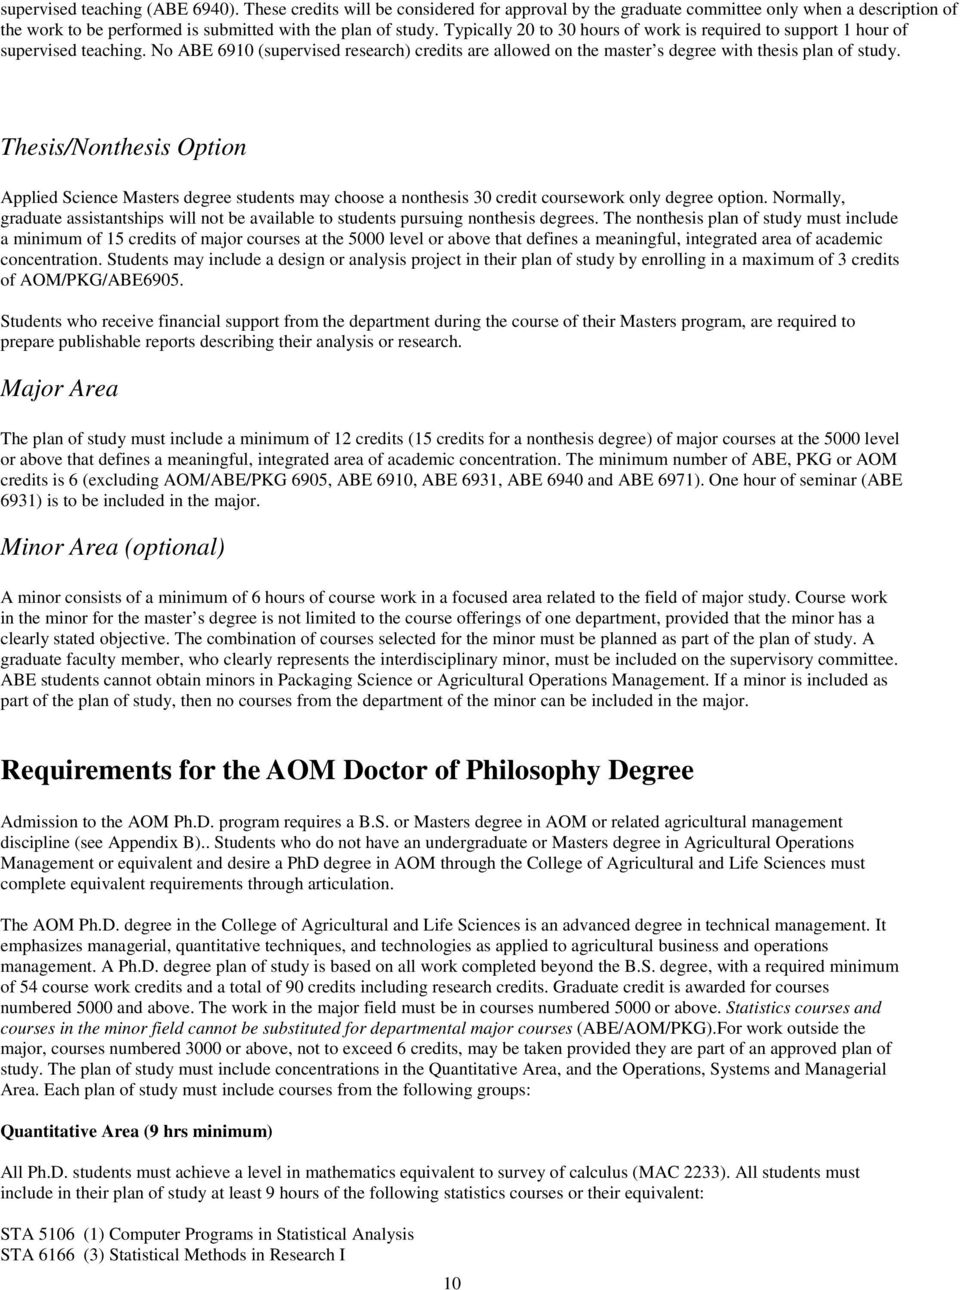 Thesis/Nonthesis Option Applied Science Masters degree students may choose a nonthesis 30 credit coursework only degree option.